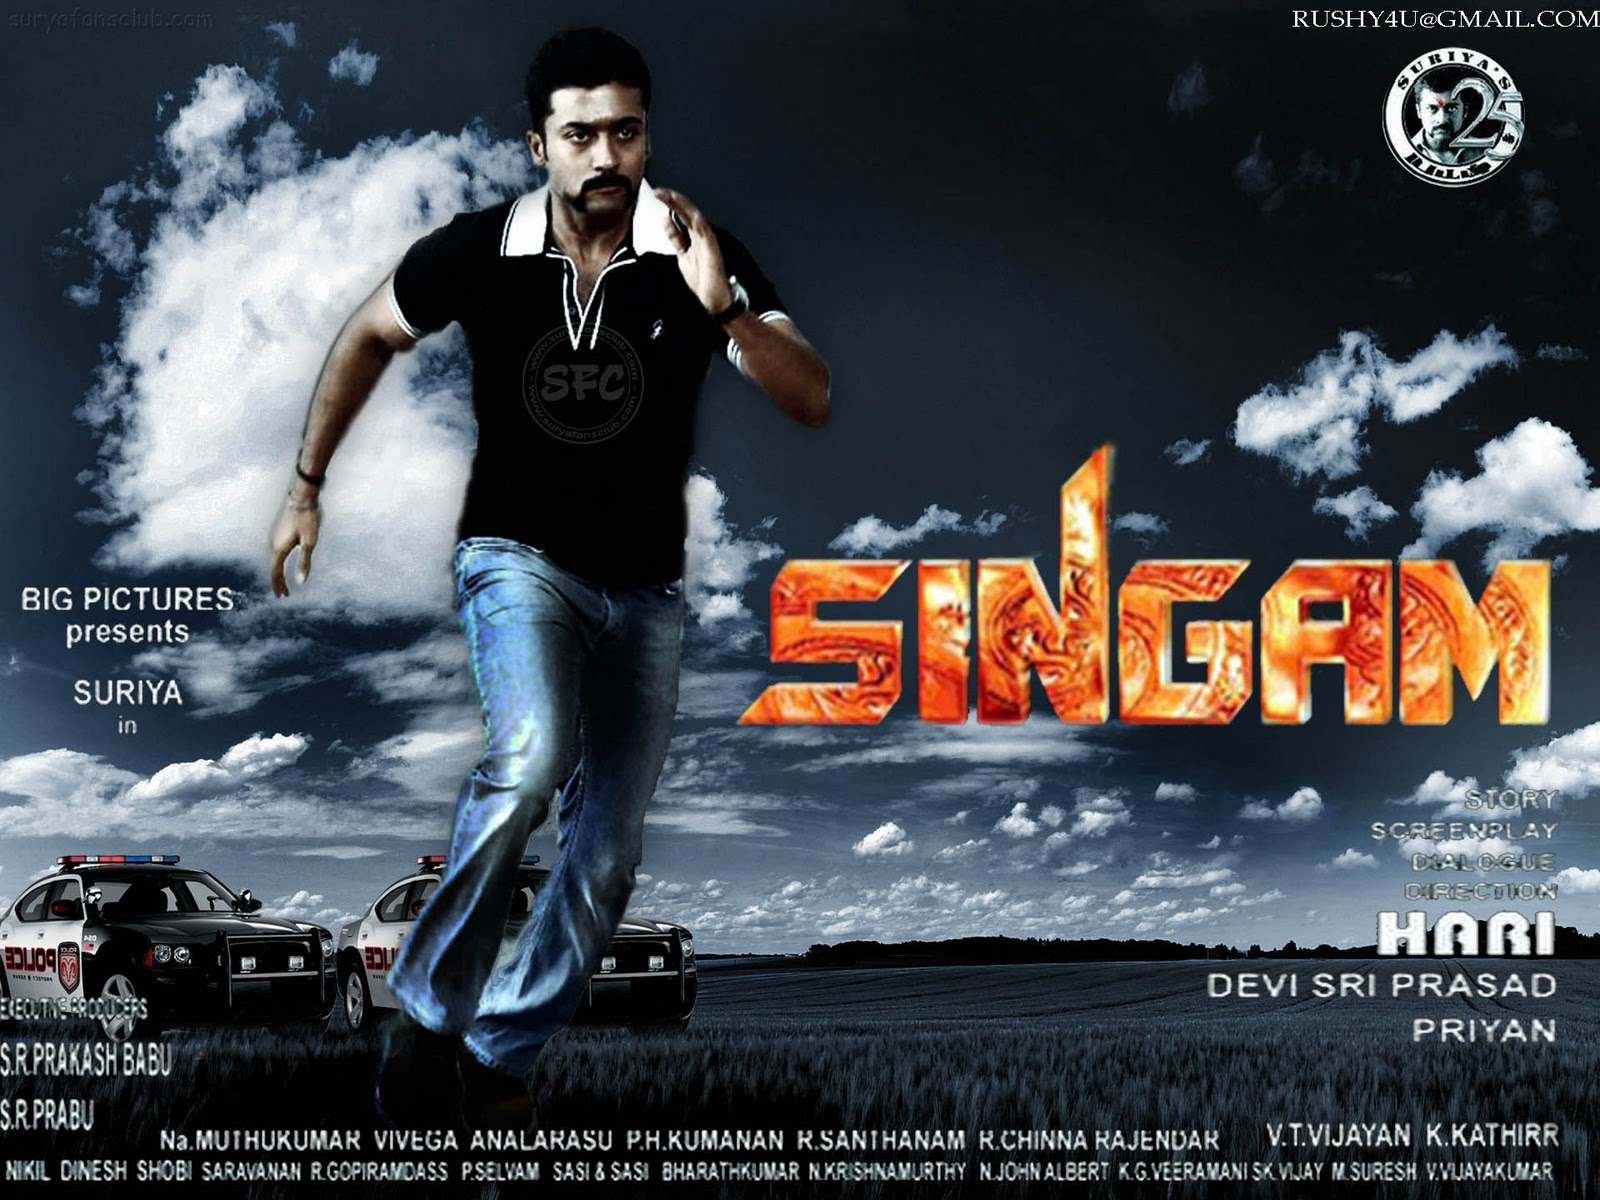 http://3.bp.blogspot.com/-B9STQXDufPE/TyFPtf5Oc7I/AAAAAAAAFVM/LU8Hq57QJ4Y/s1600/SINGAM+TAMIL+MP4+AND+3GP+MOBILE+VIDEO+SONGS+FREE+DOWNLOAD.jpg